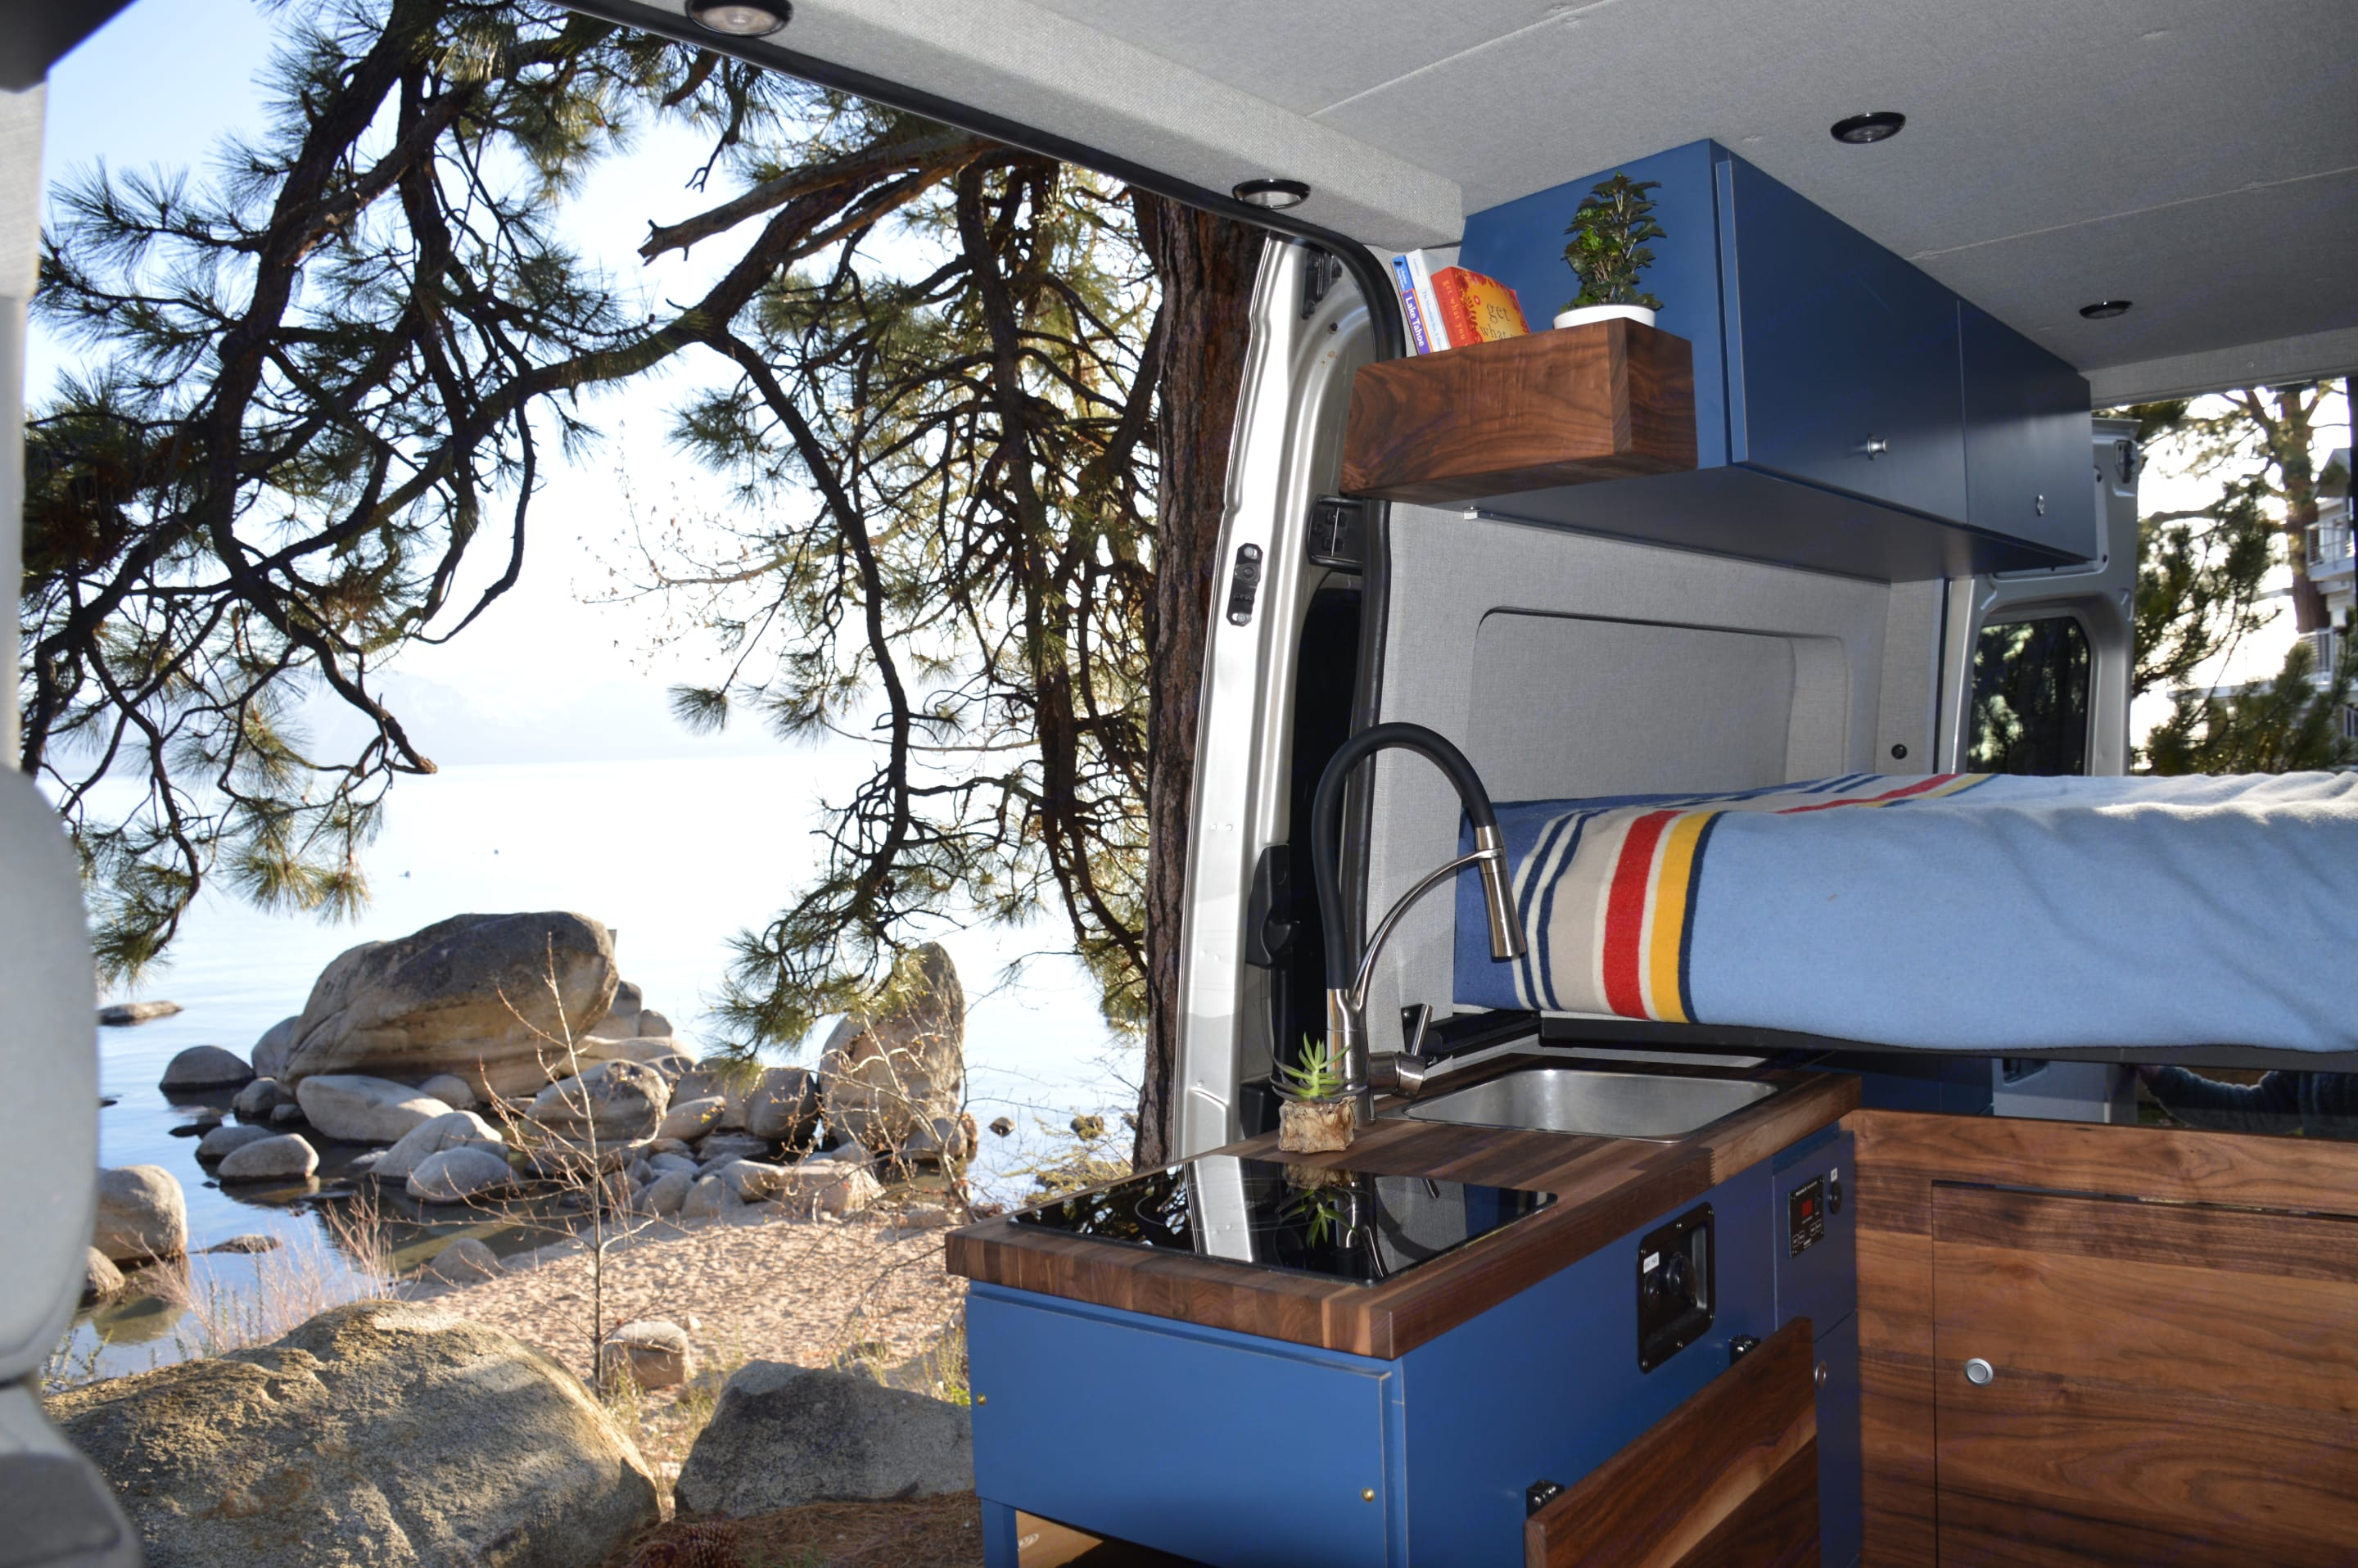 Imagine opening up the sliding door to the vacation of your dreams. . Mercedes-Benz Sprinter 2014